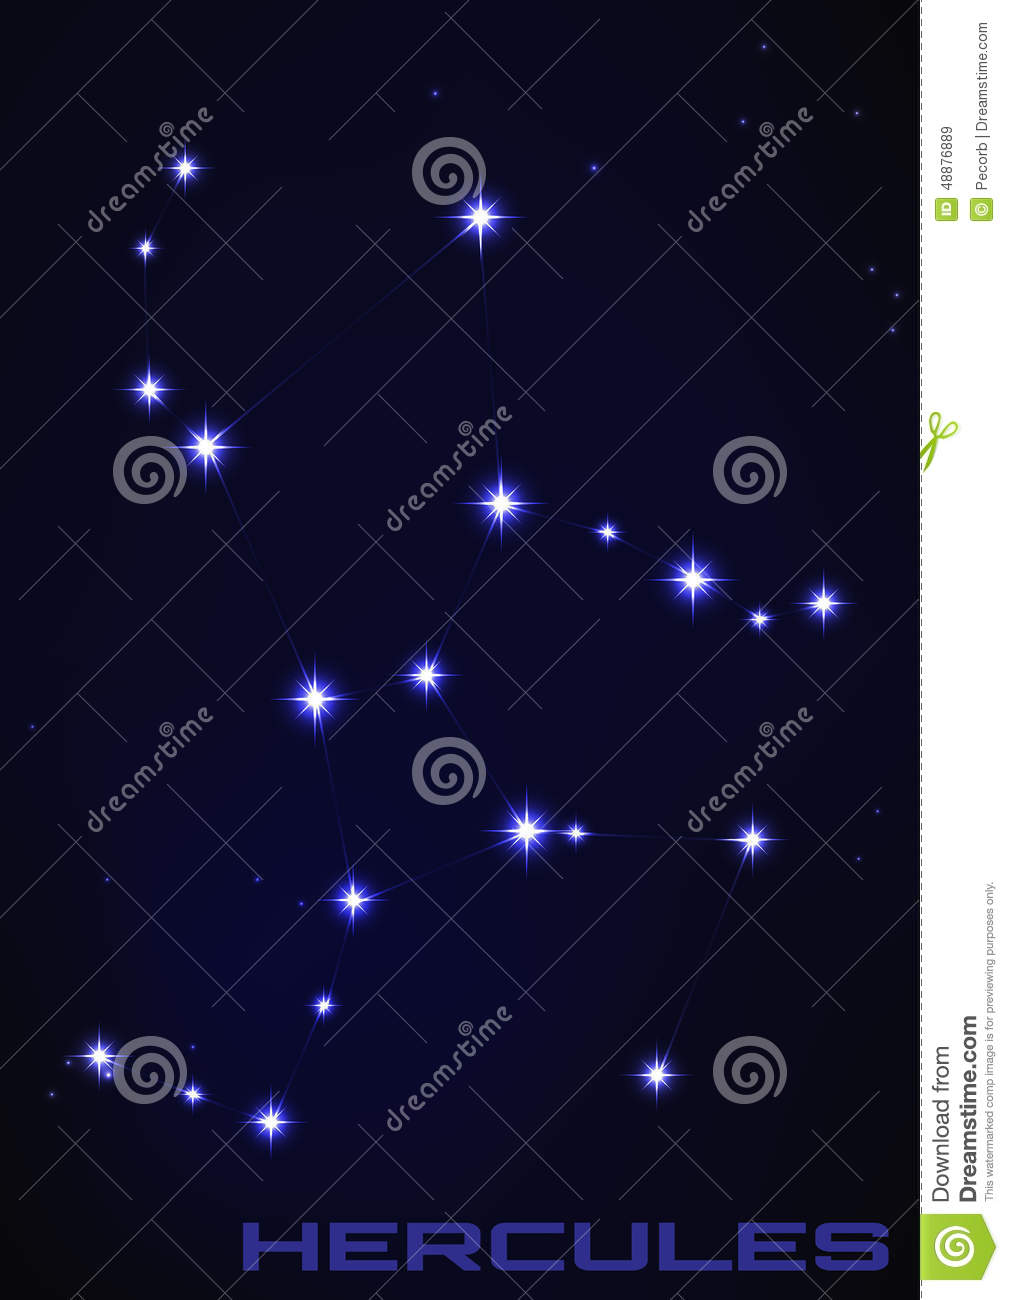 hercules constellation stock vector image 48876889